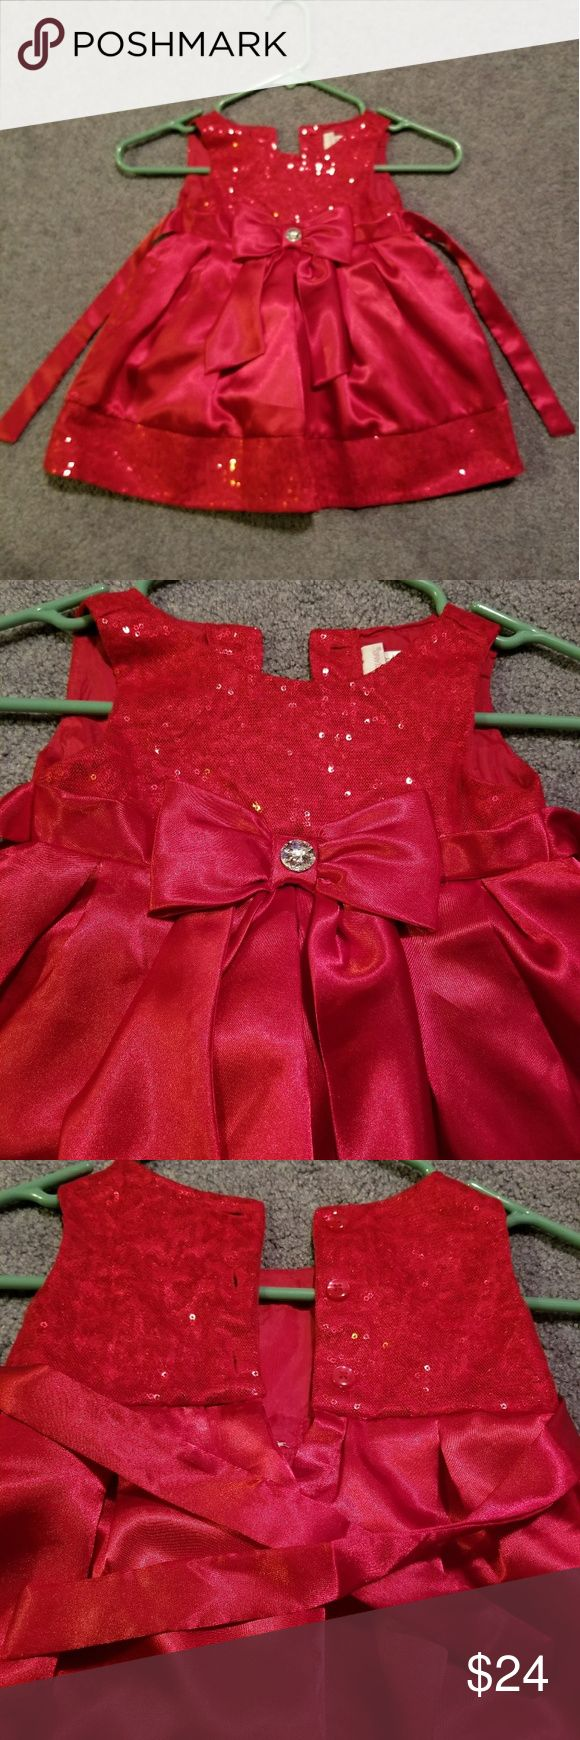 Toddler girl Christmas dress EUC red satiny Christmas dress. Sleeveless, button and tie back. Sequin top and trim. Front bow with jewel detail. Pet free, smoke free house. Youngland Dresses Formal